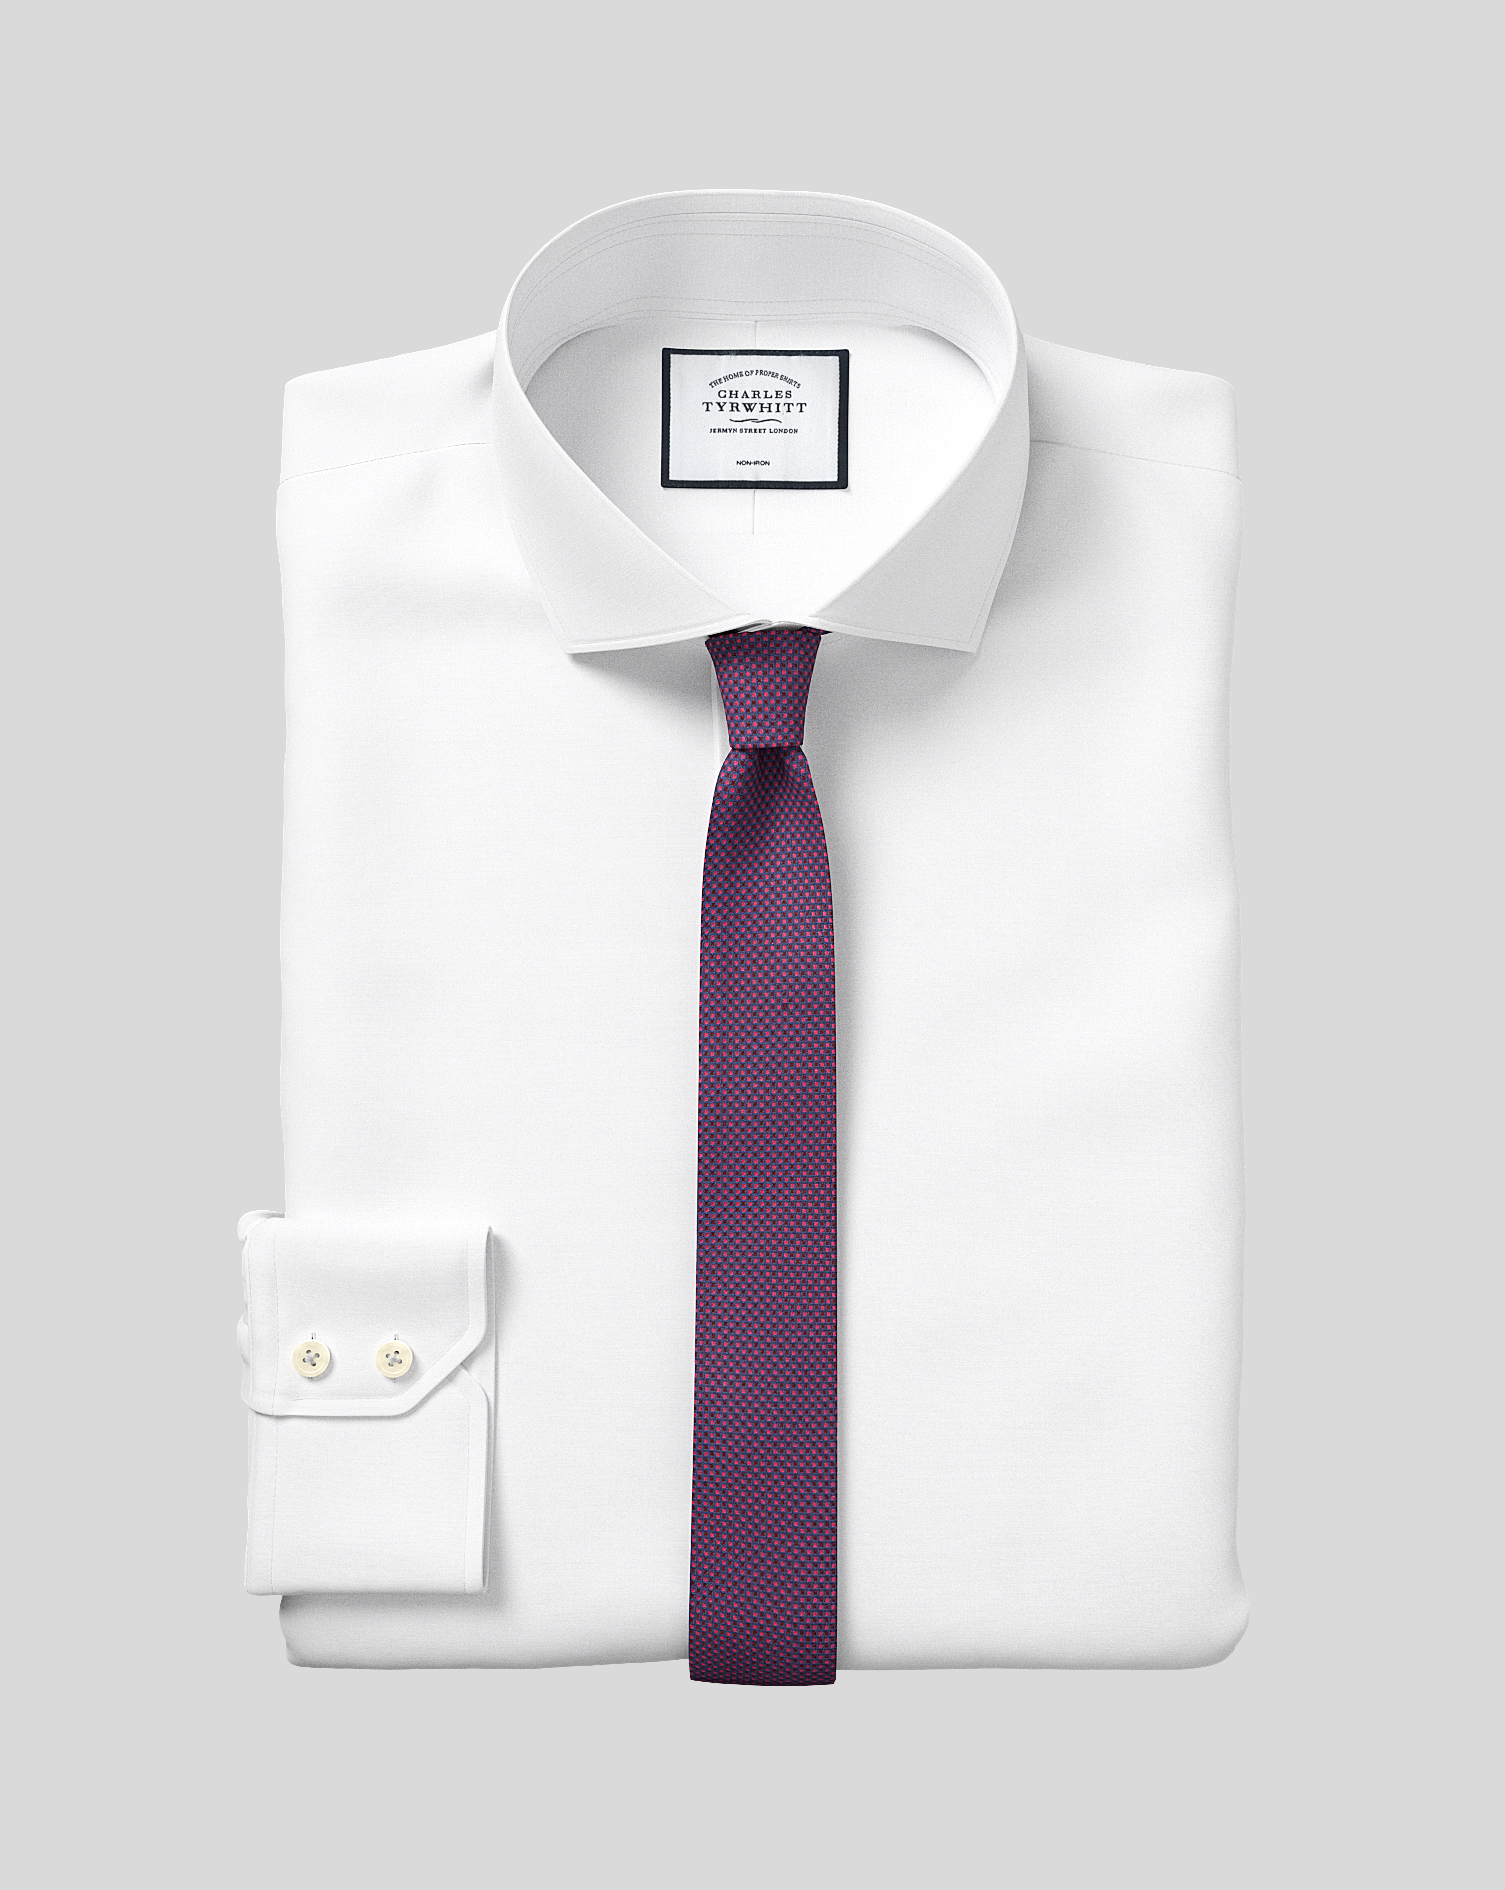 Slim Fit Non-Iron 4-Way Stretch White Cotton Formal Shirt Single Cuff Size 17/35 by Charles Tyrwhitt